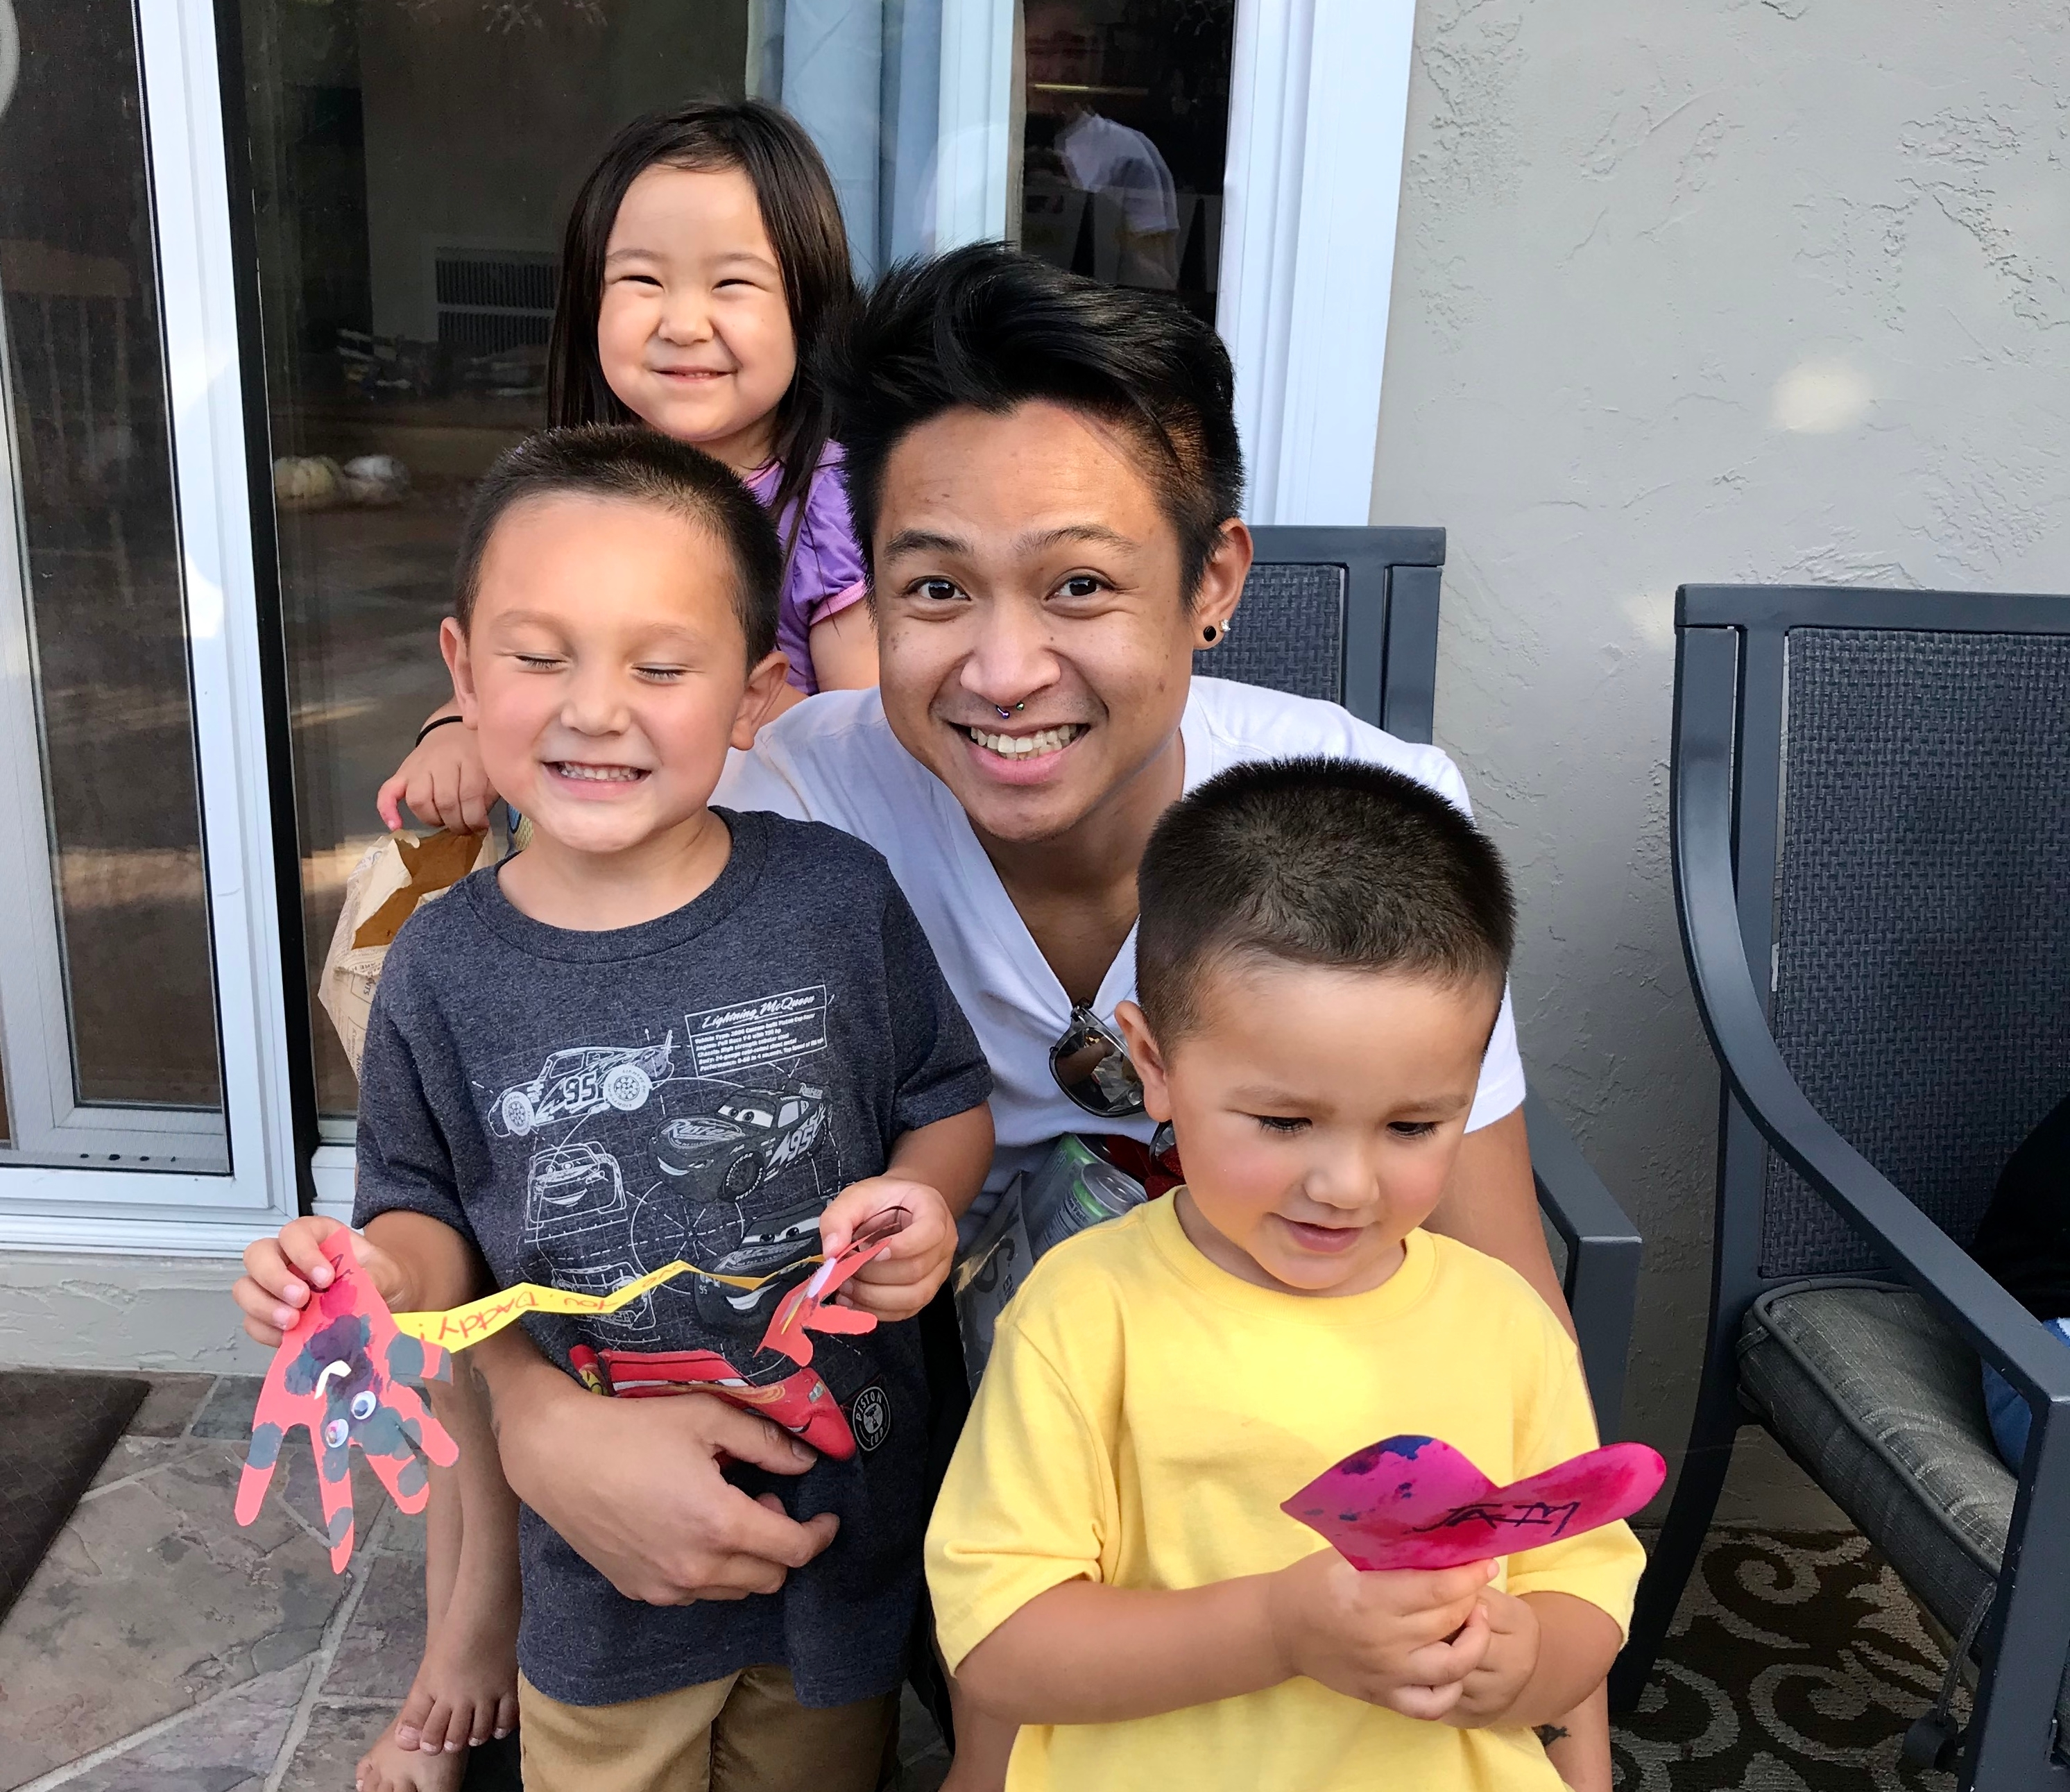 Nikko and his family.